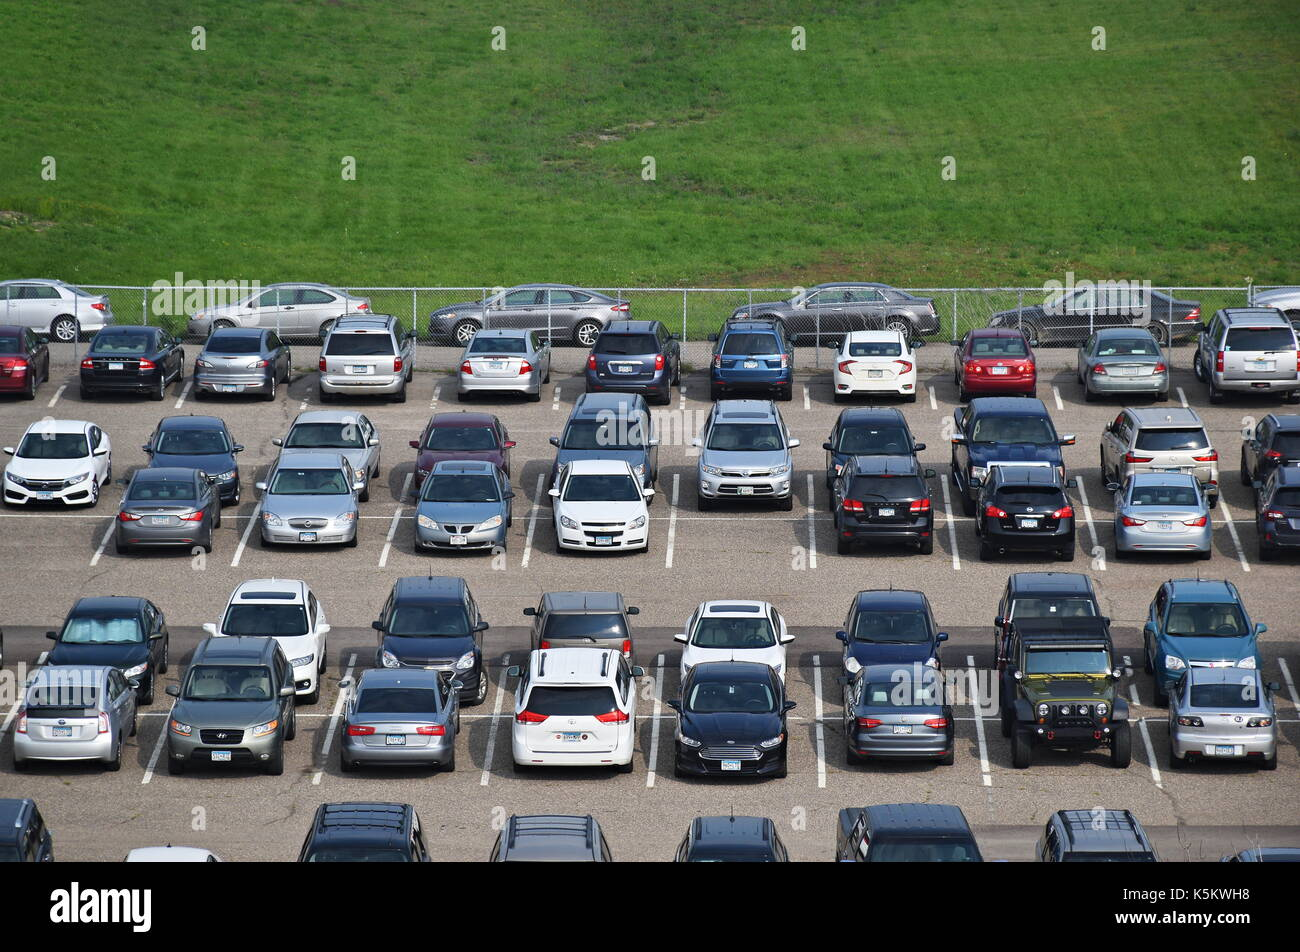 Mall America Parking Lot Aerial View